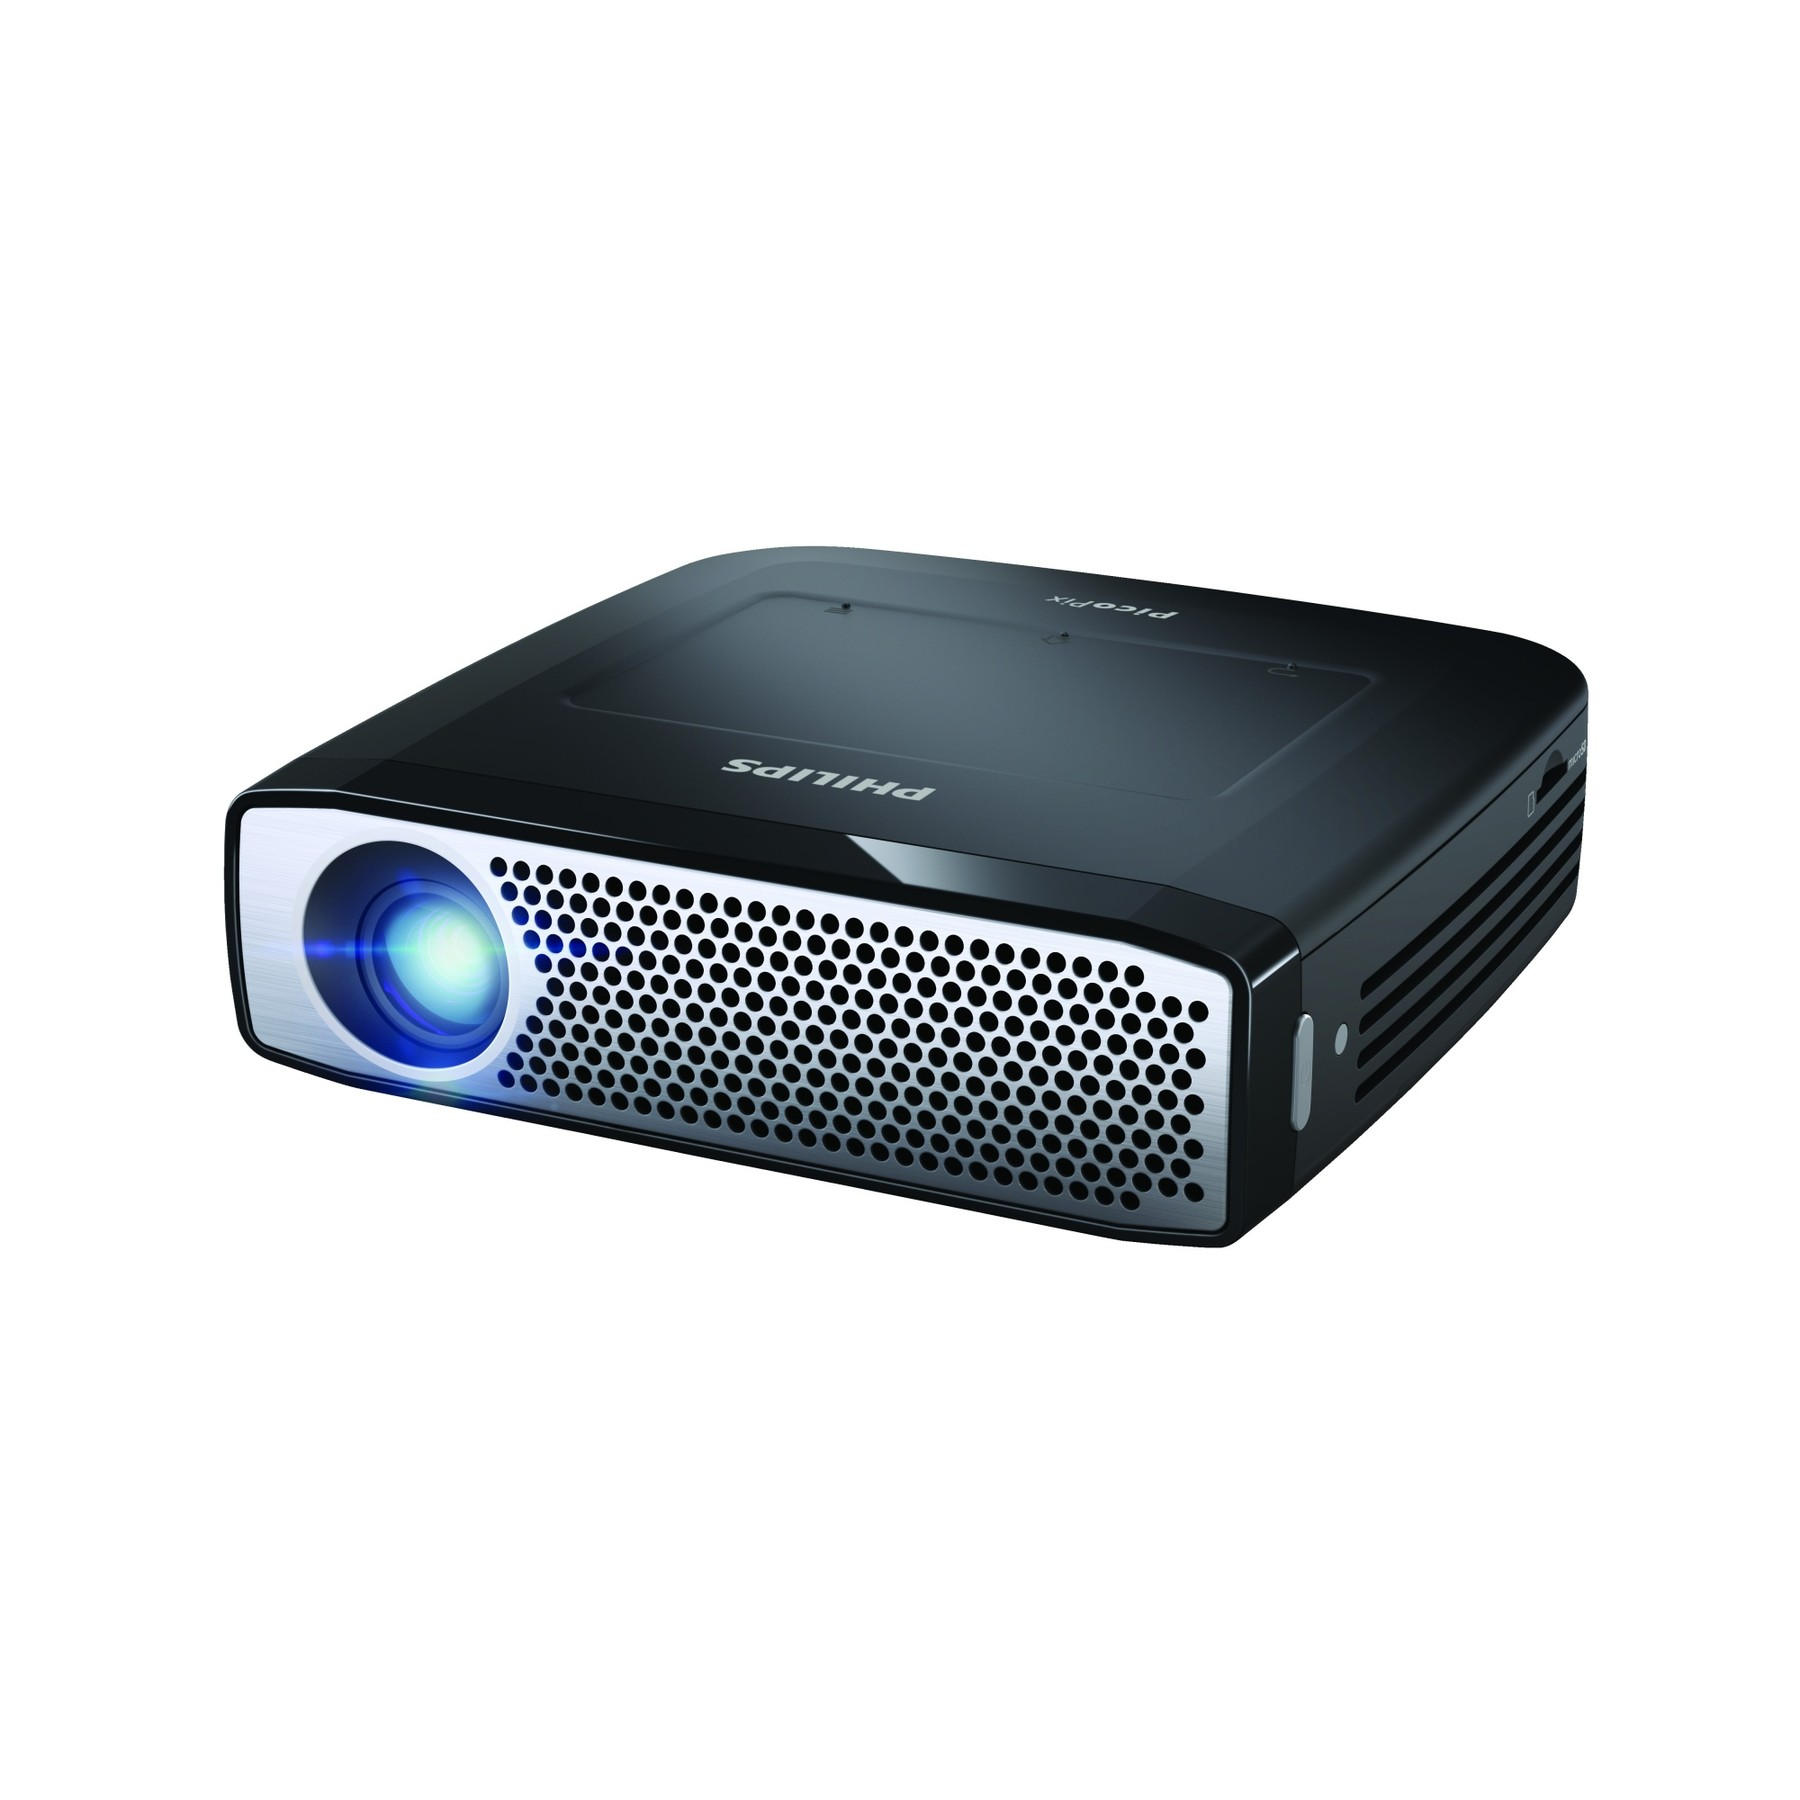 Philips picopix ppx 4935 led 1280x720 pocket projector for Best pocket projector for presentations